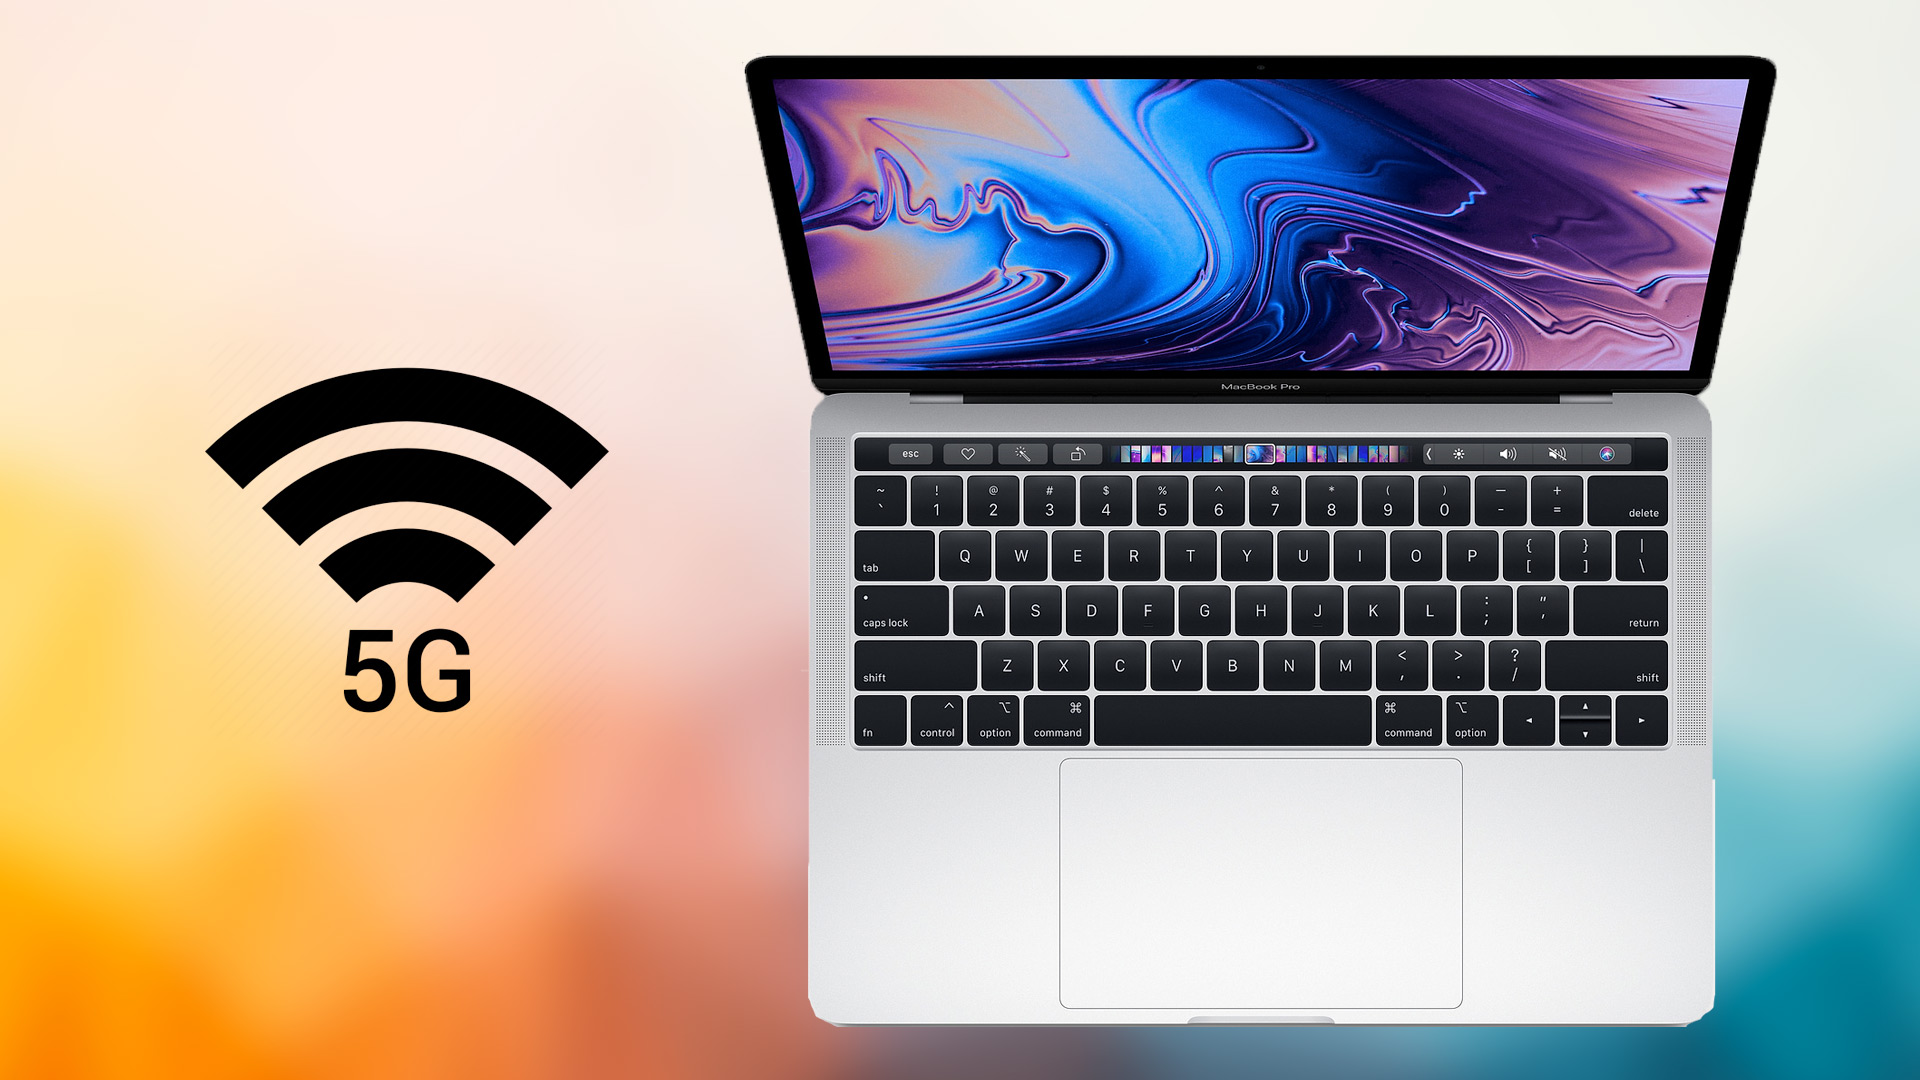 Apple MacBook 5G expected to be a pioneer in the 5G market